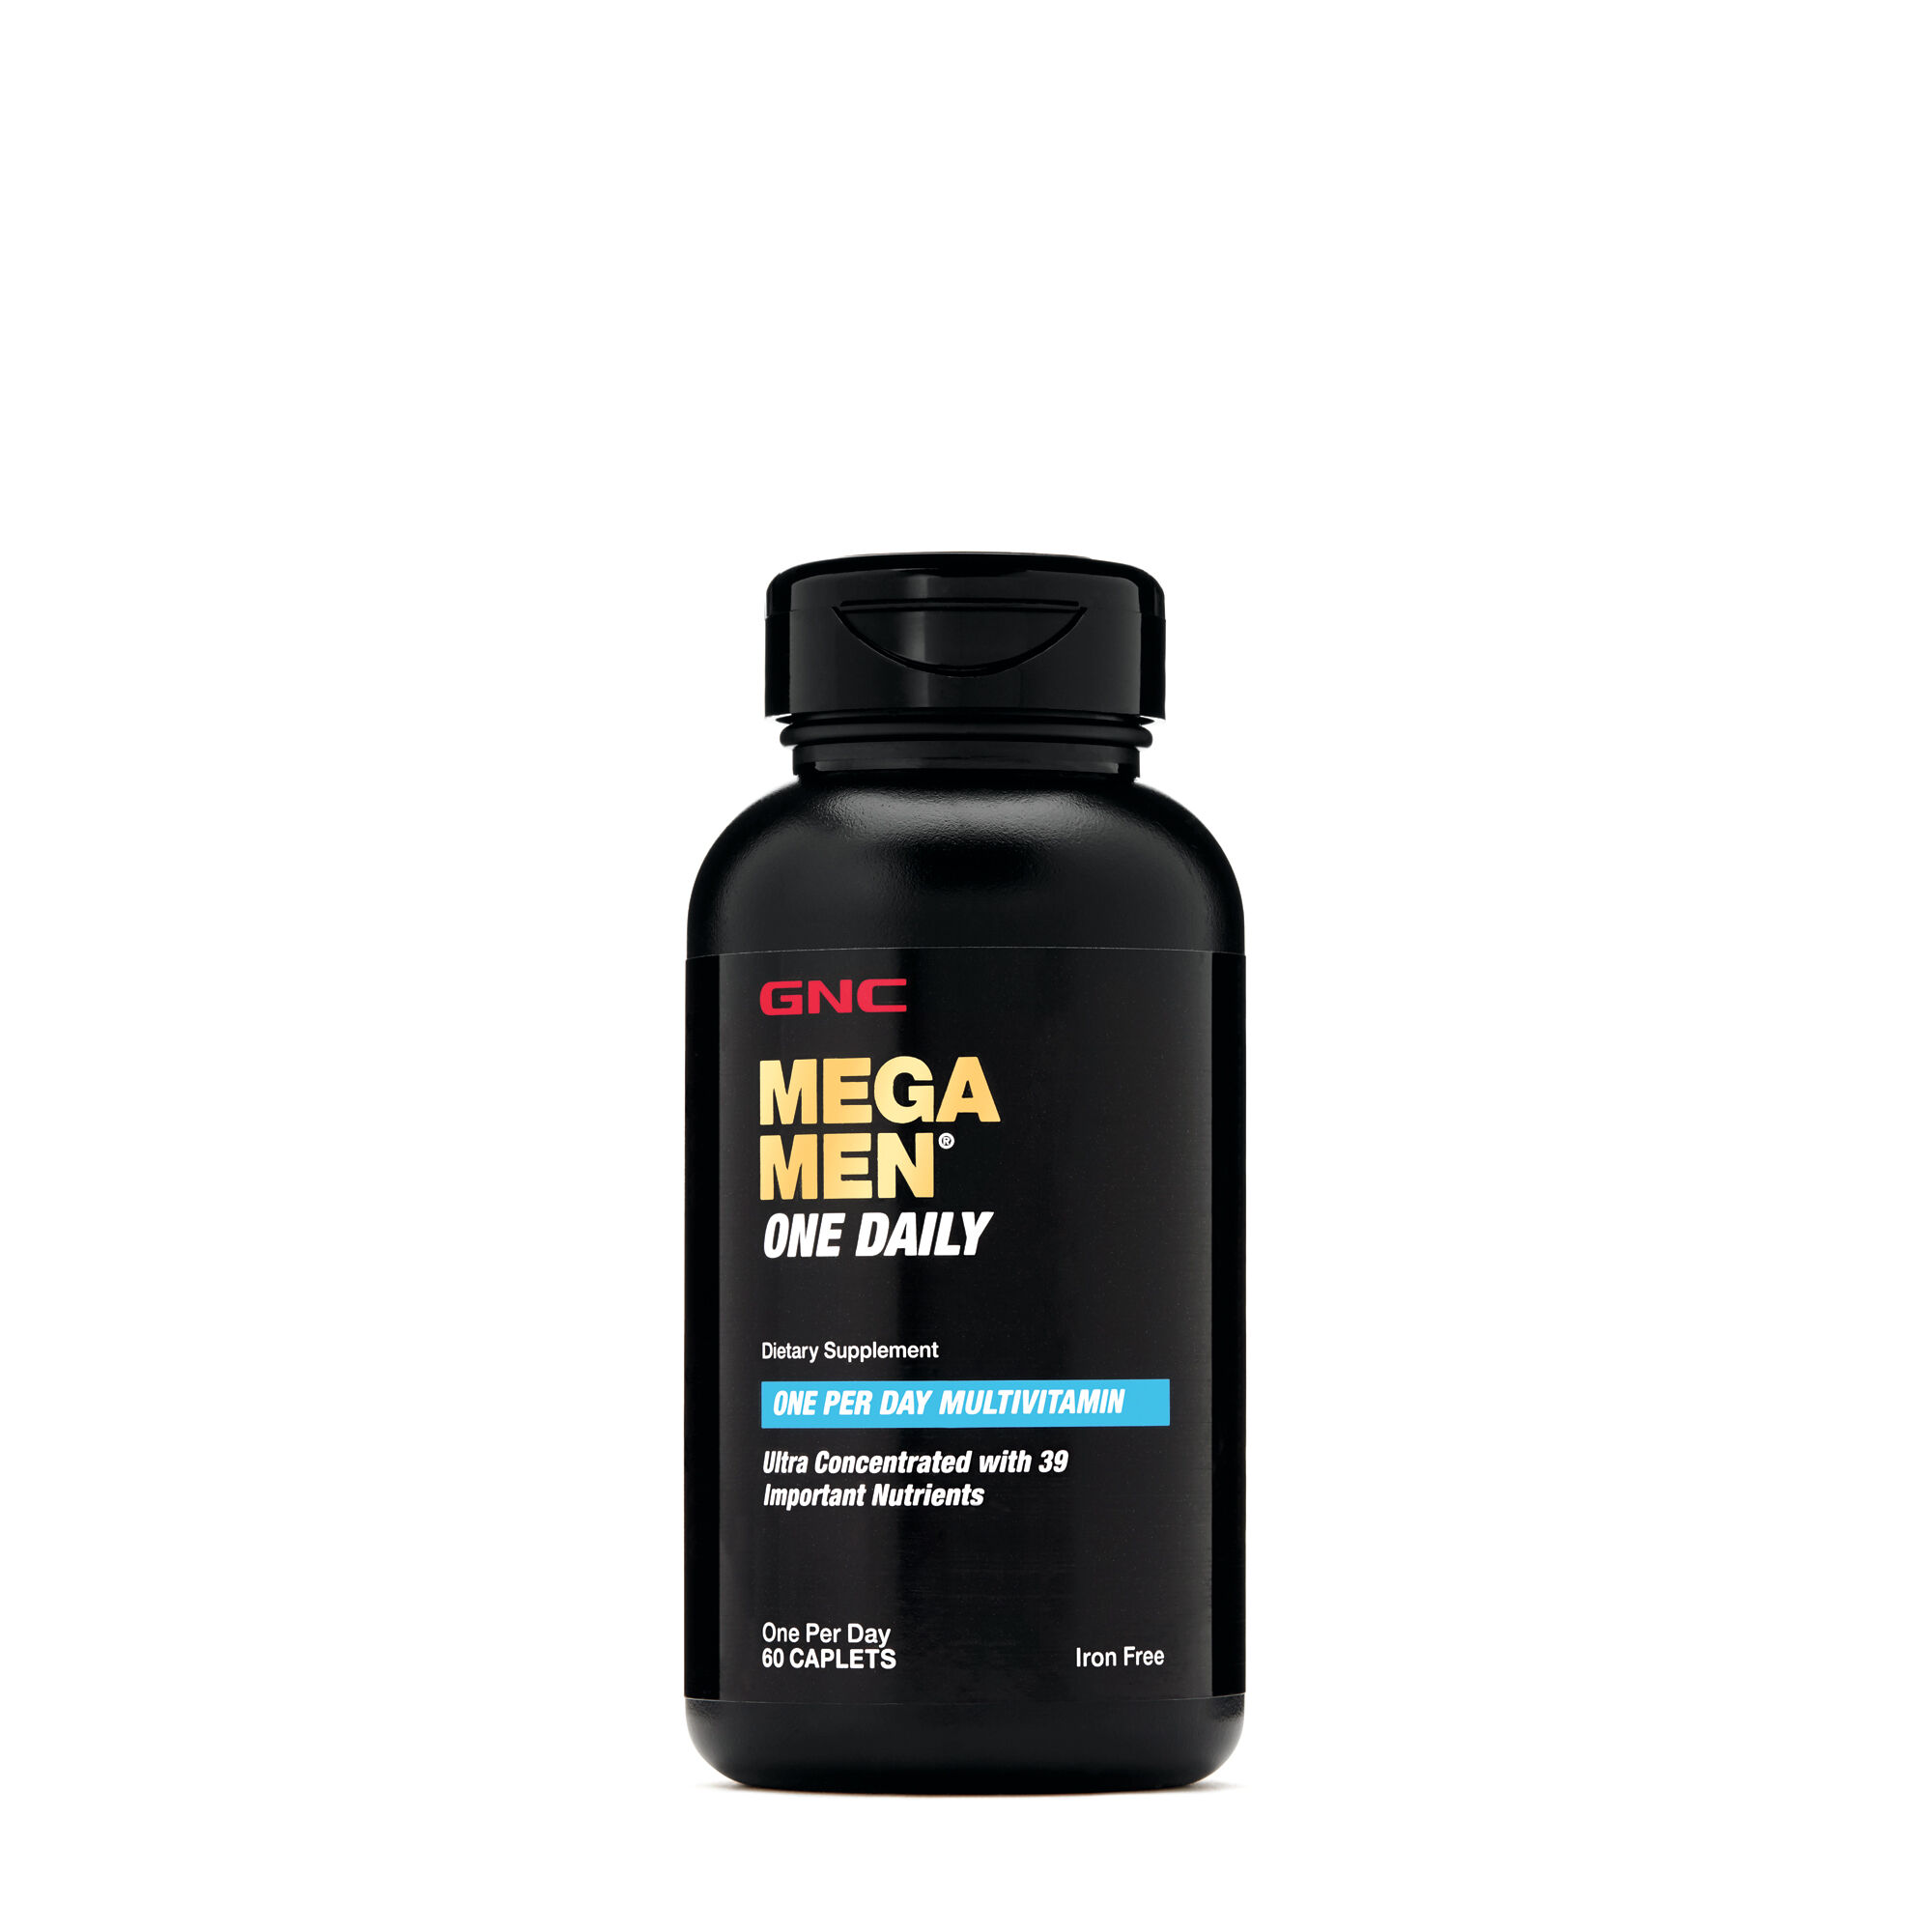 [BEST] GNC 메가맨 원 데일리 (60정) GNC Mega Men One Daily, 60 Caplets